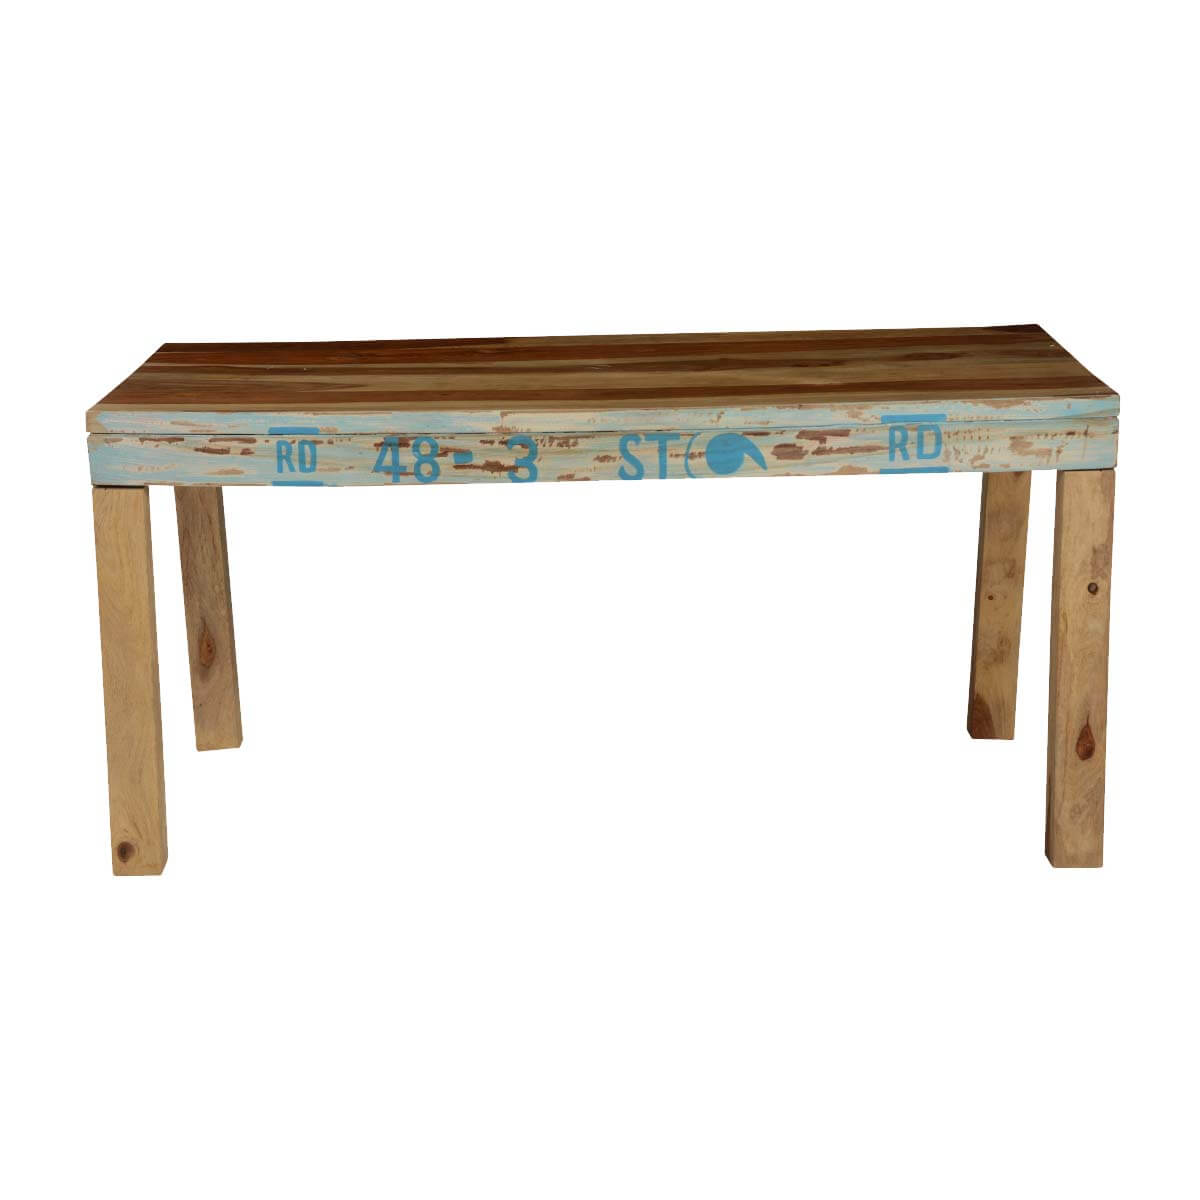 Natural Rustic Solid Wood Rectangular Dining Table : 74351 from www.sierralivingconcepts.com size 1200 x 1200 jpeg 70kB